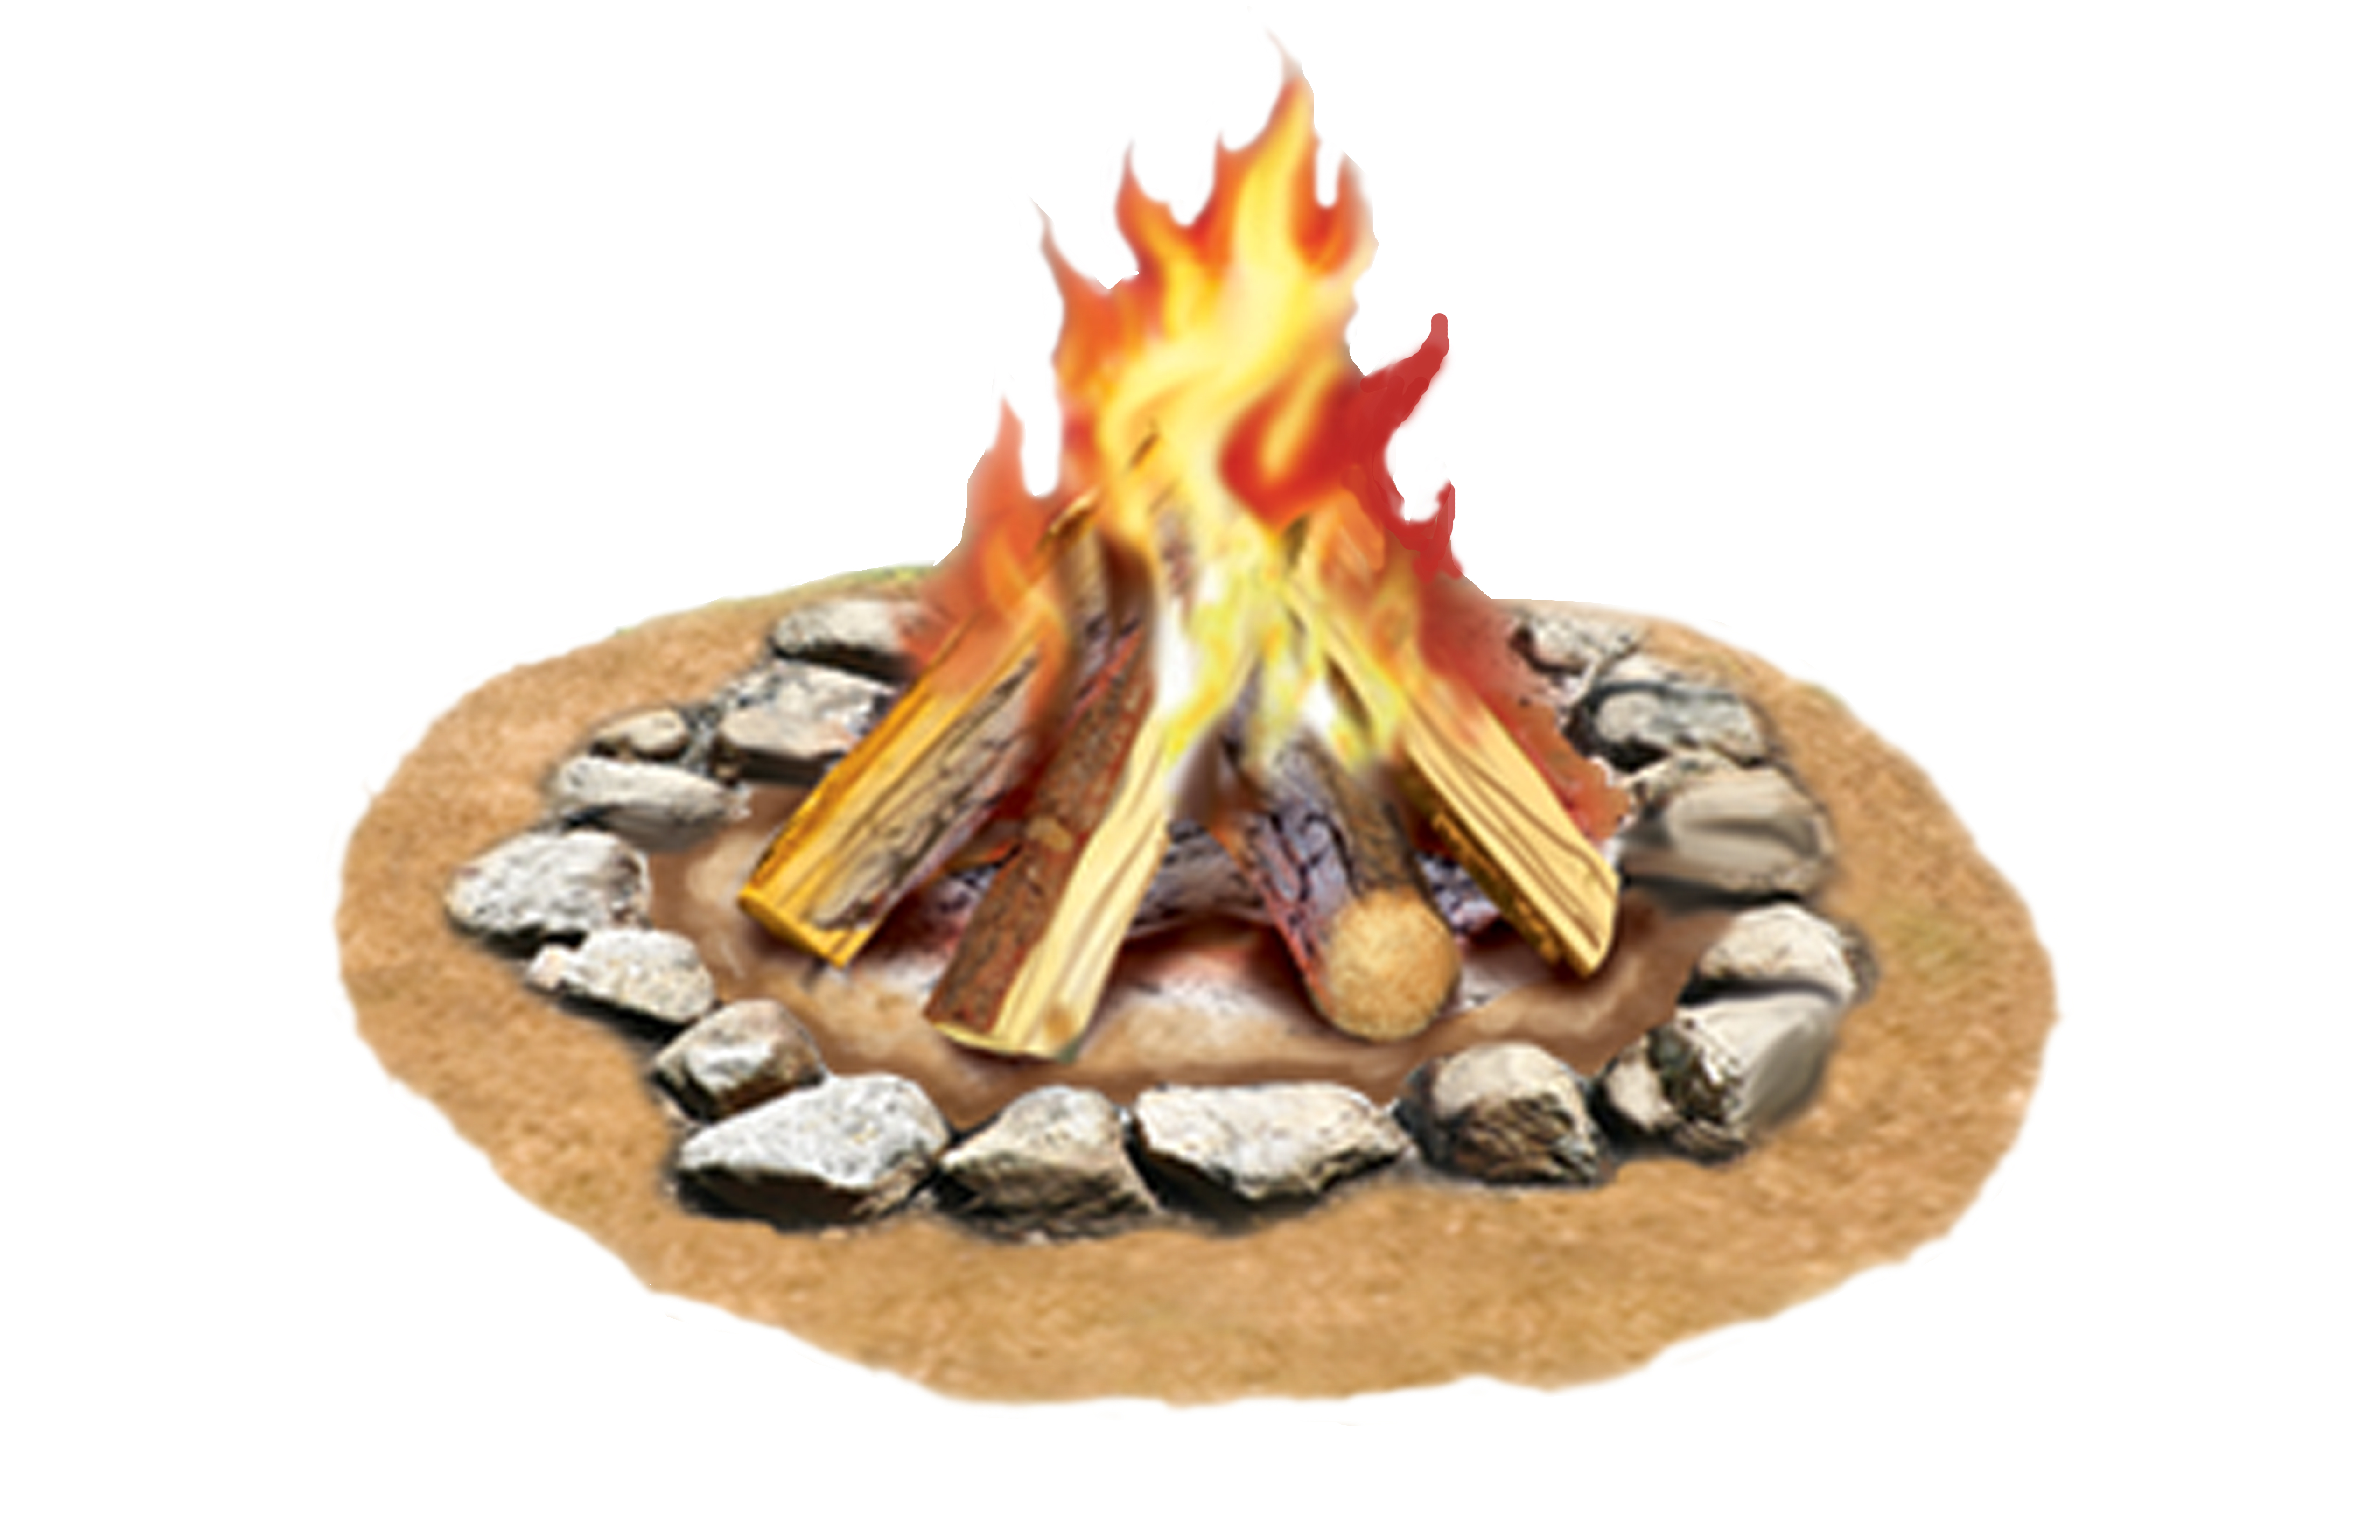 Free campfire clipart picture free library Free Campfire Cliparts, Download Free Clip Art, Free Clip Art on ... picture free library